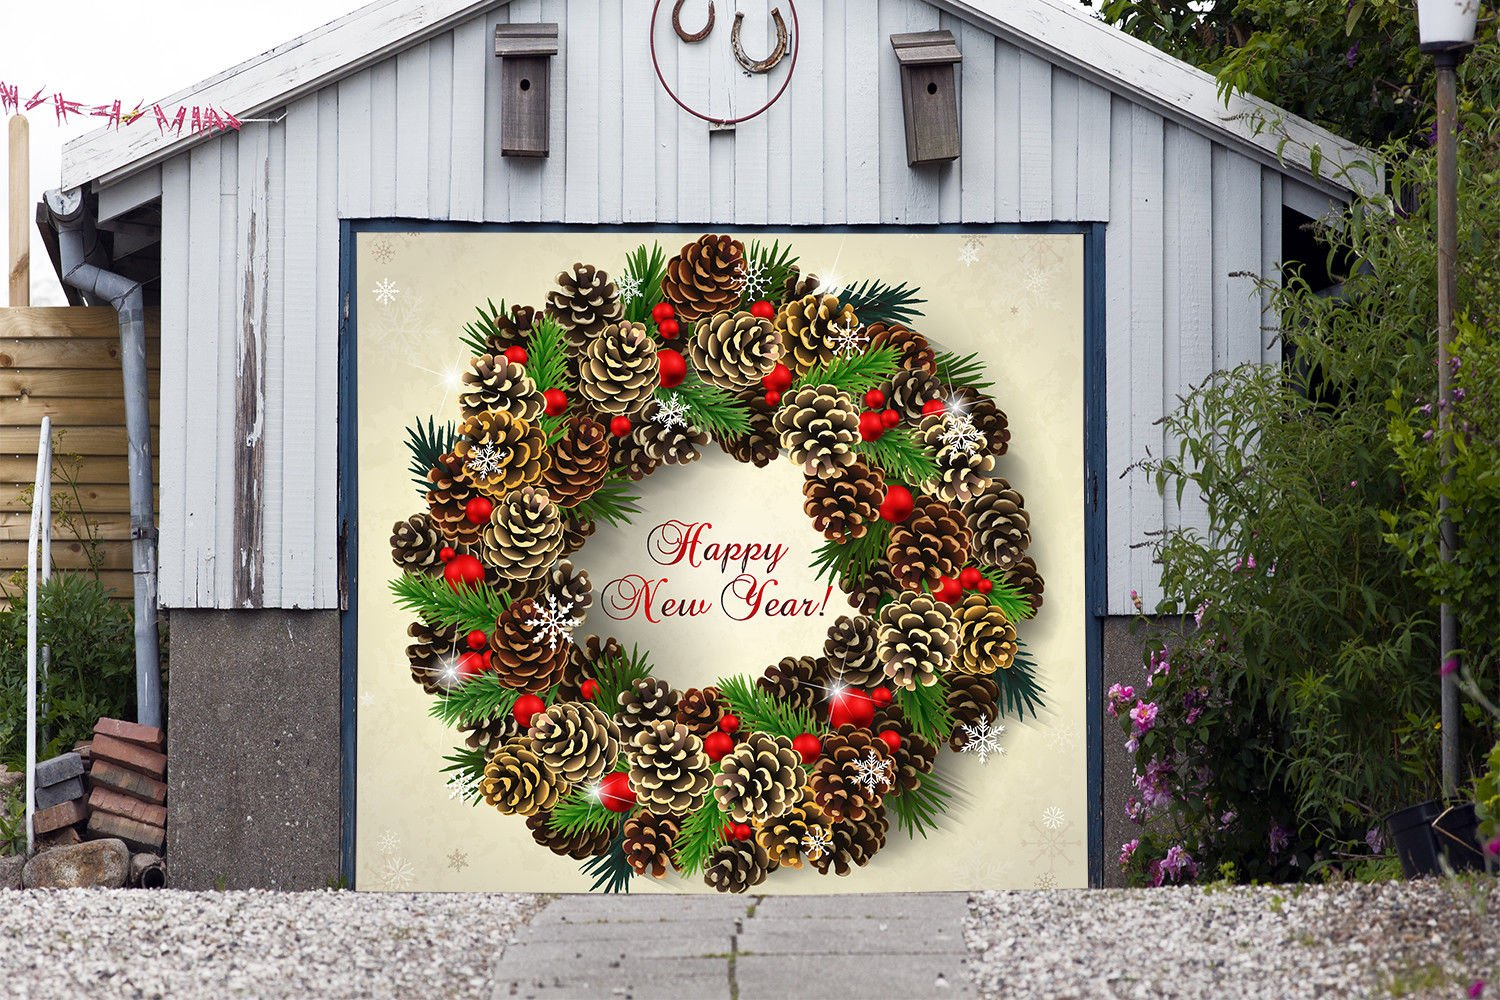 Wreath Christmas Full Color for SINGLE CAR GARAGE Holiday Banner DOOR MURALS Covers Outdoor Decor Billboard 3D Effect Print Decorations of House Garage Door Cover Size 83 x 89 inches DAV204